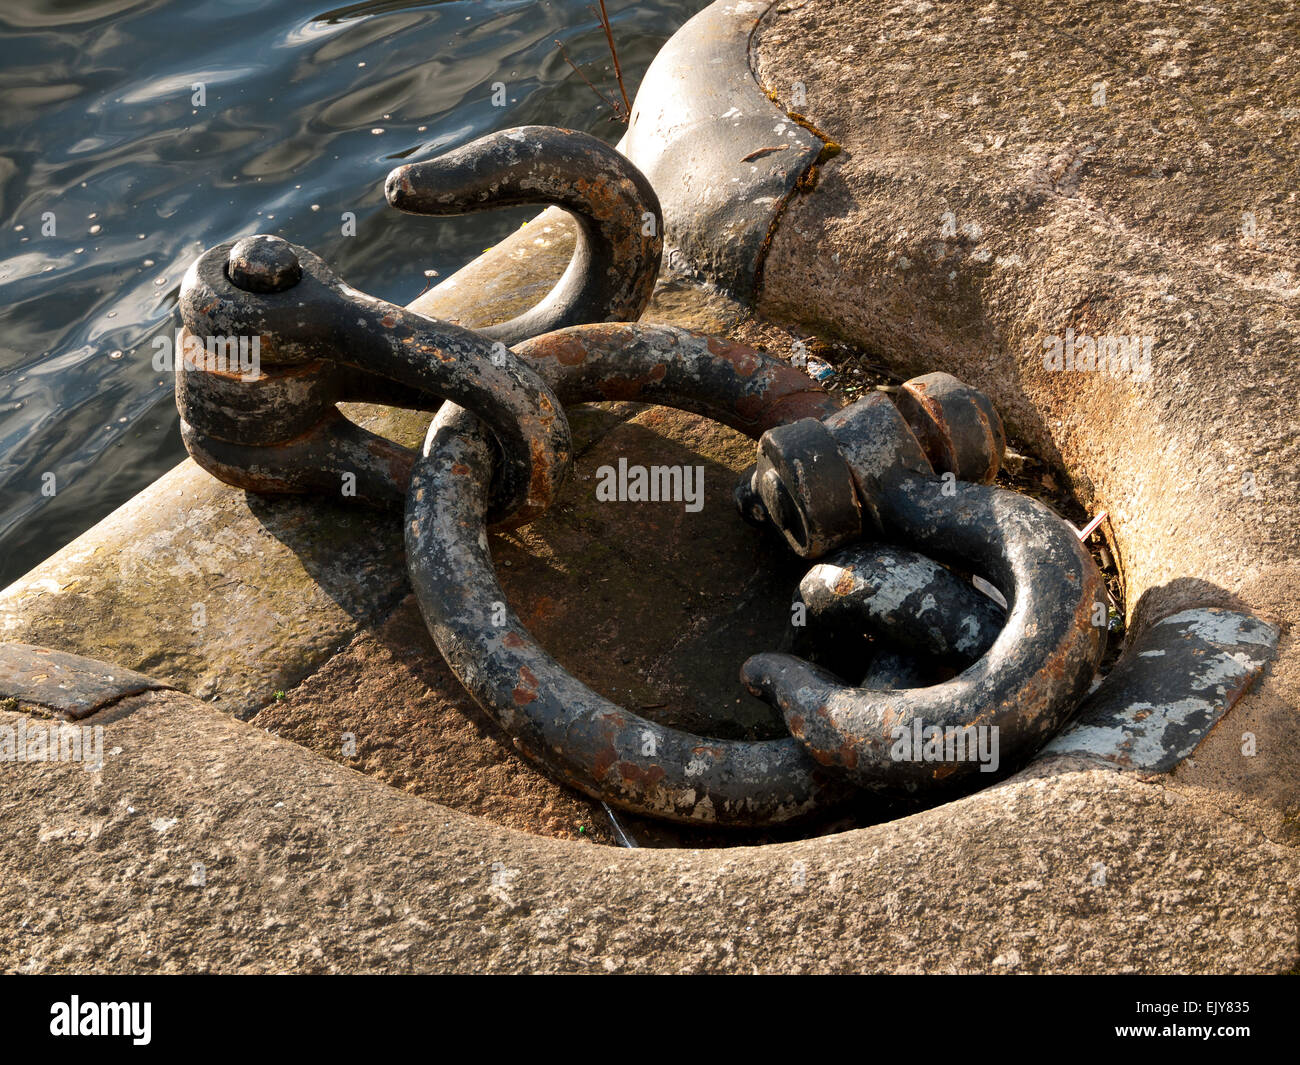 Mooring hooks and shackles at Salford Quays, Manchester, England, UK - Stock Image